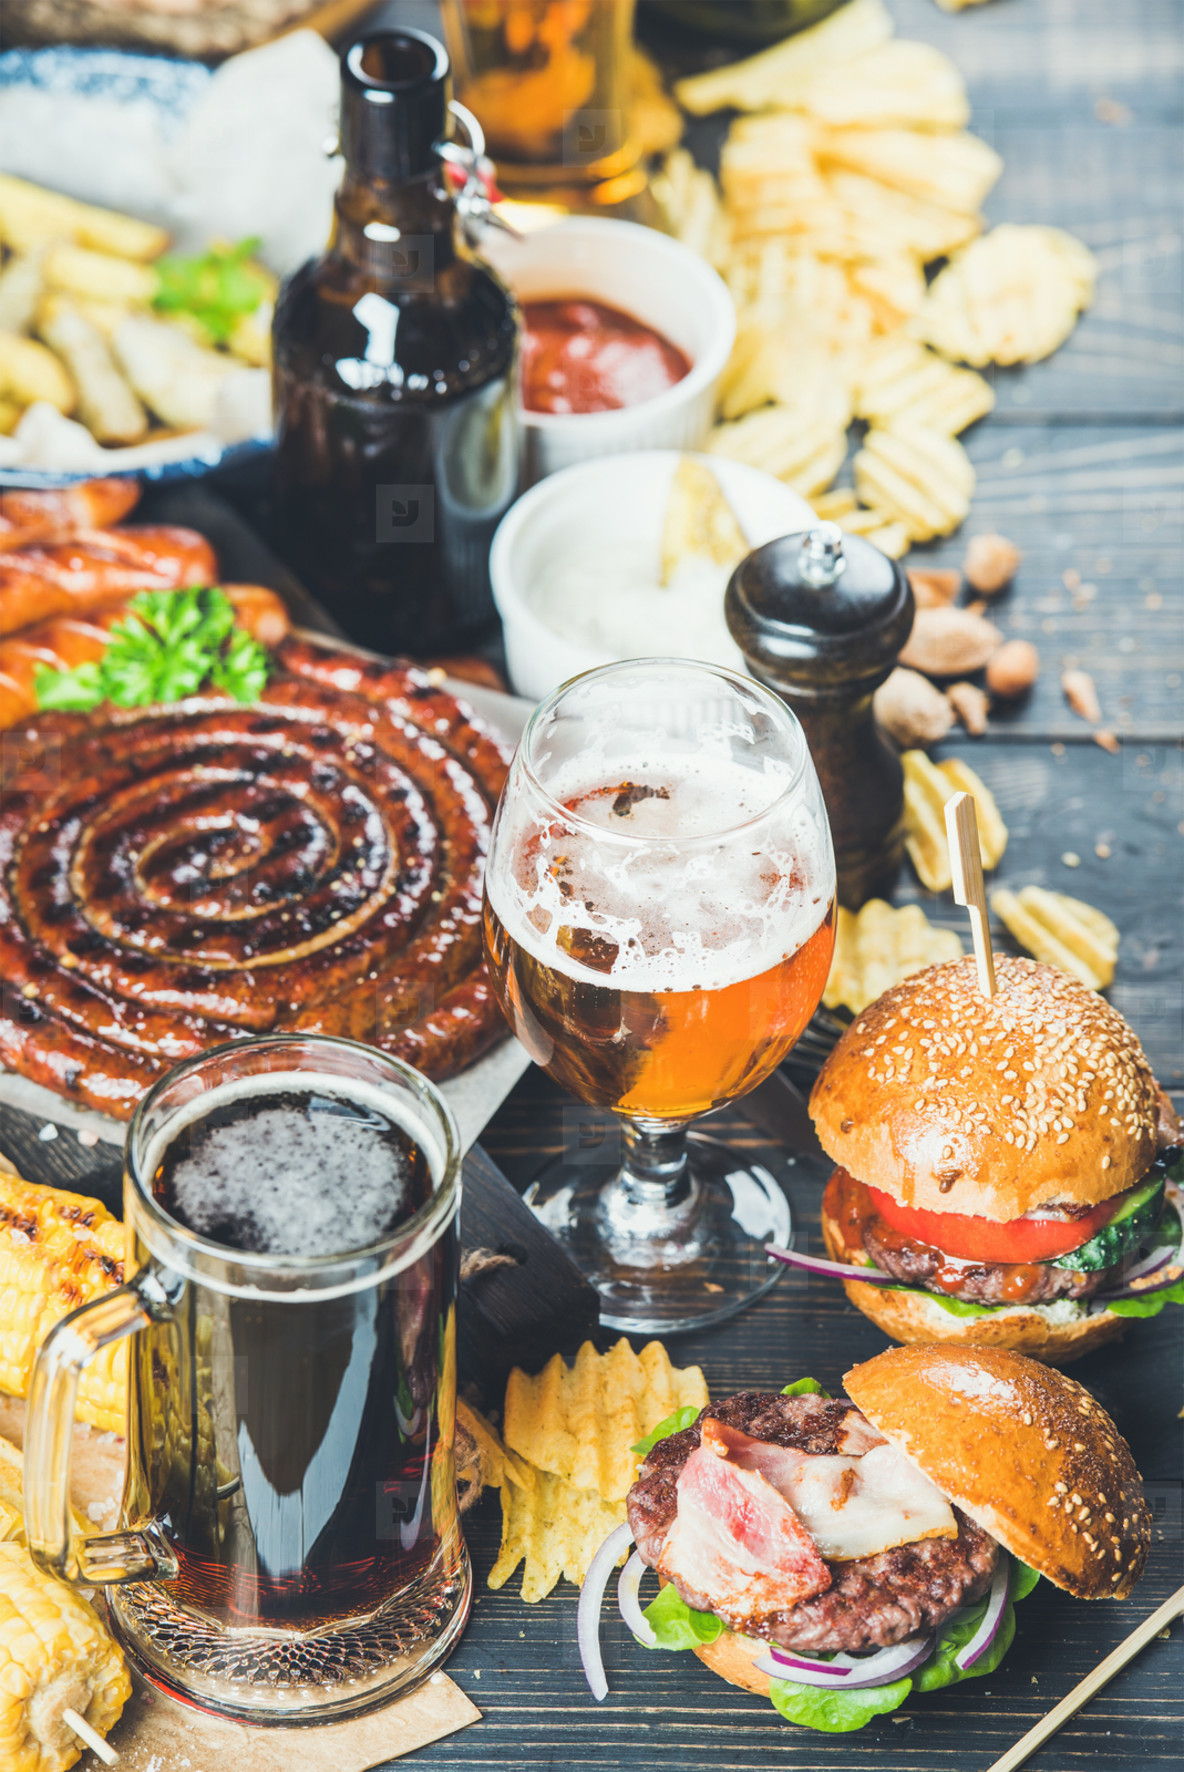 Beer and snack set on dark wooden scorched background